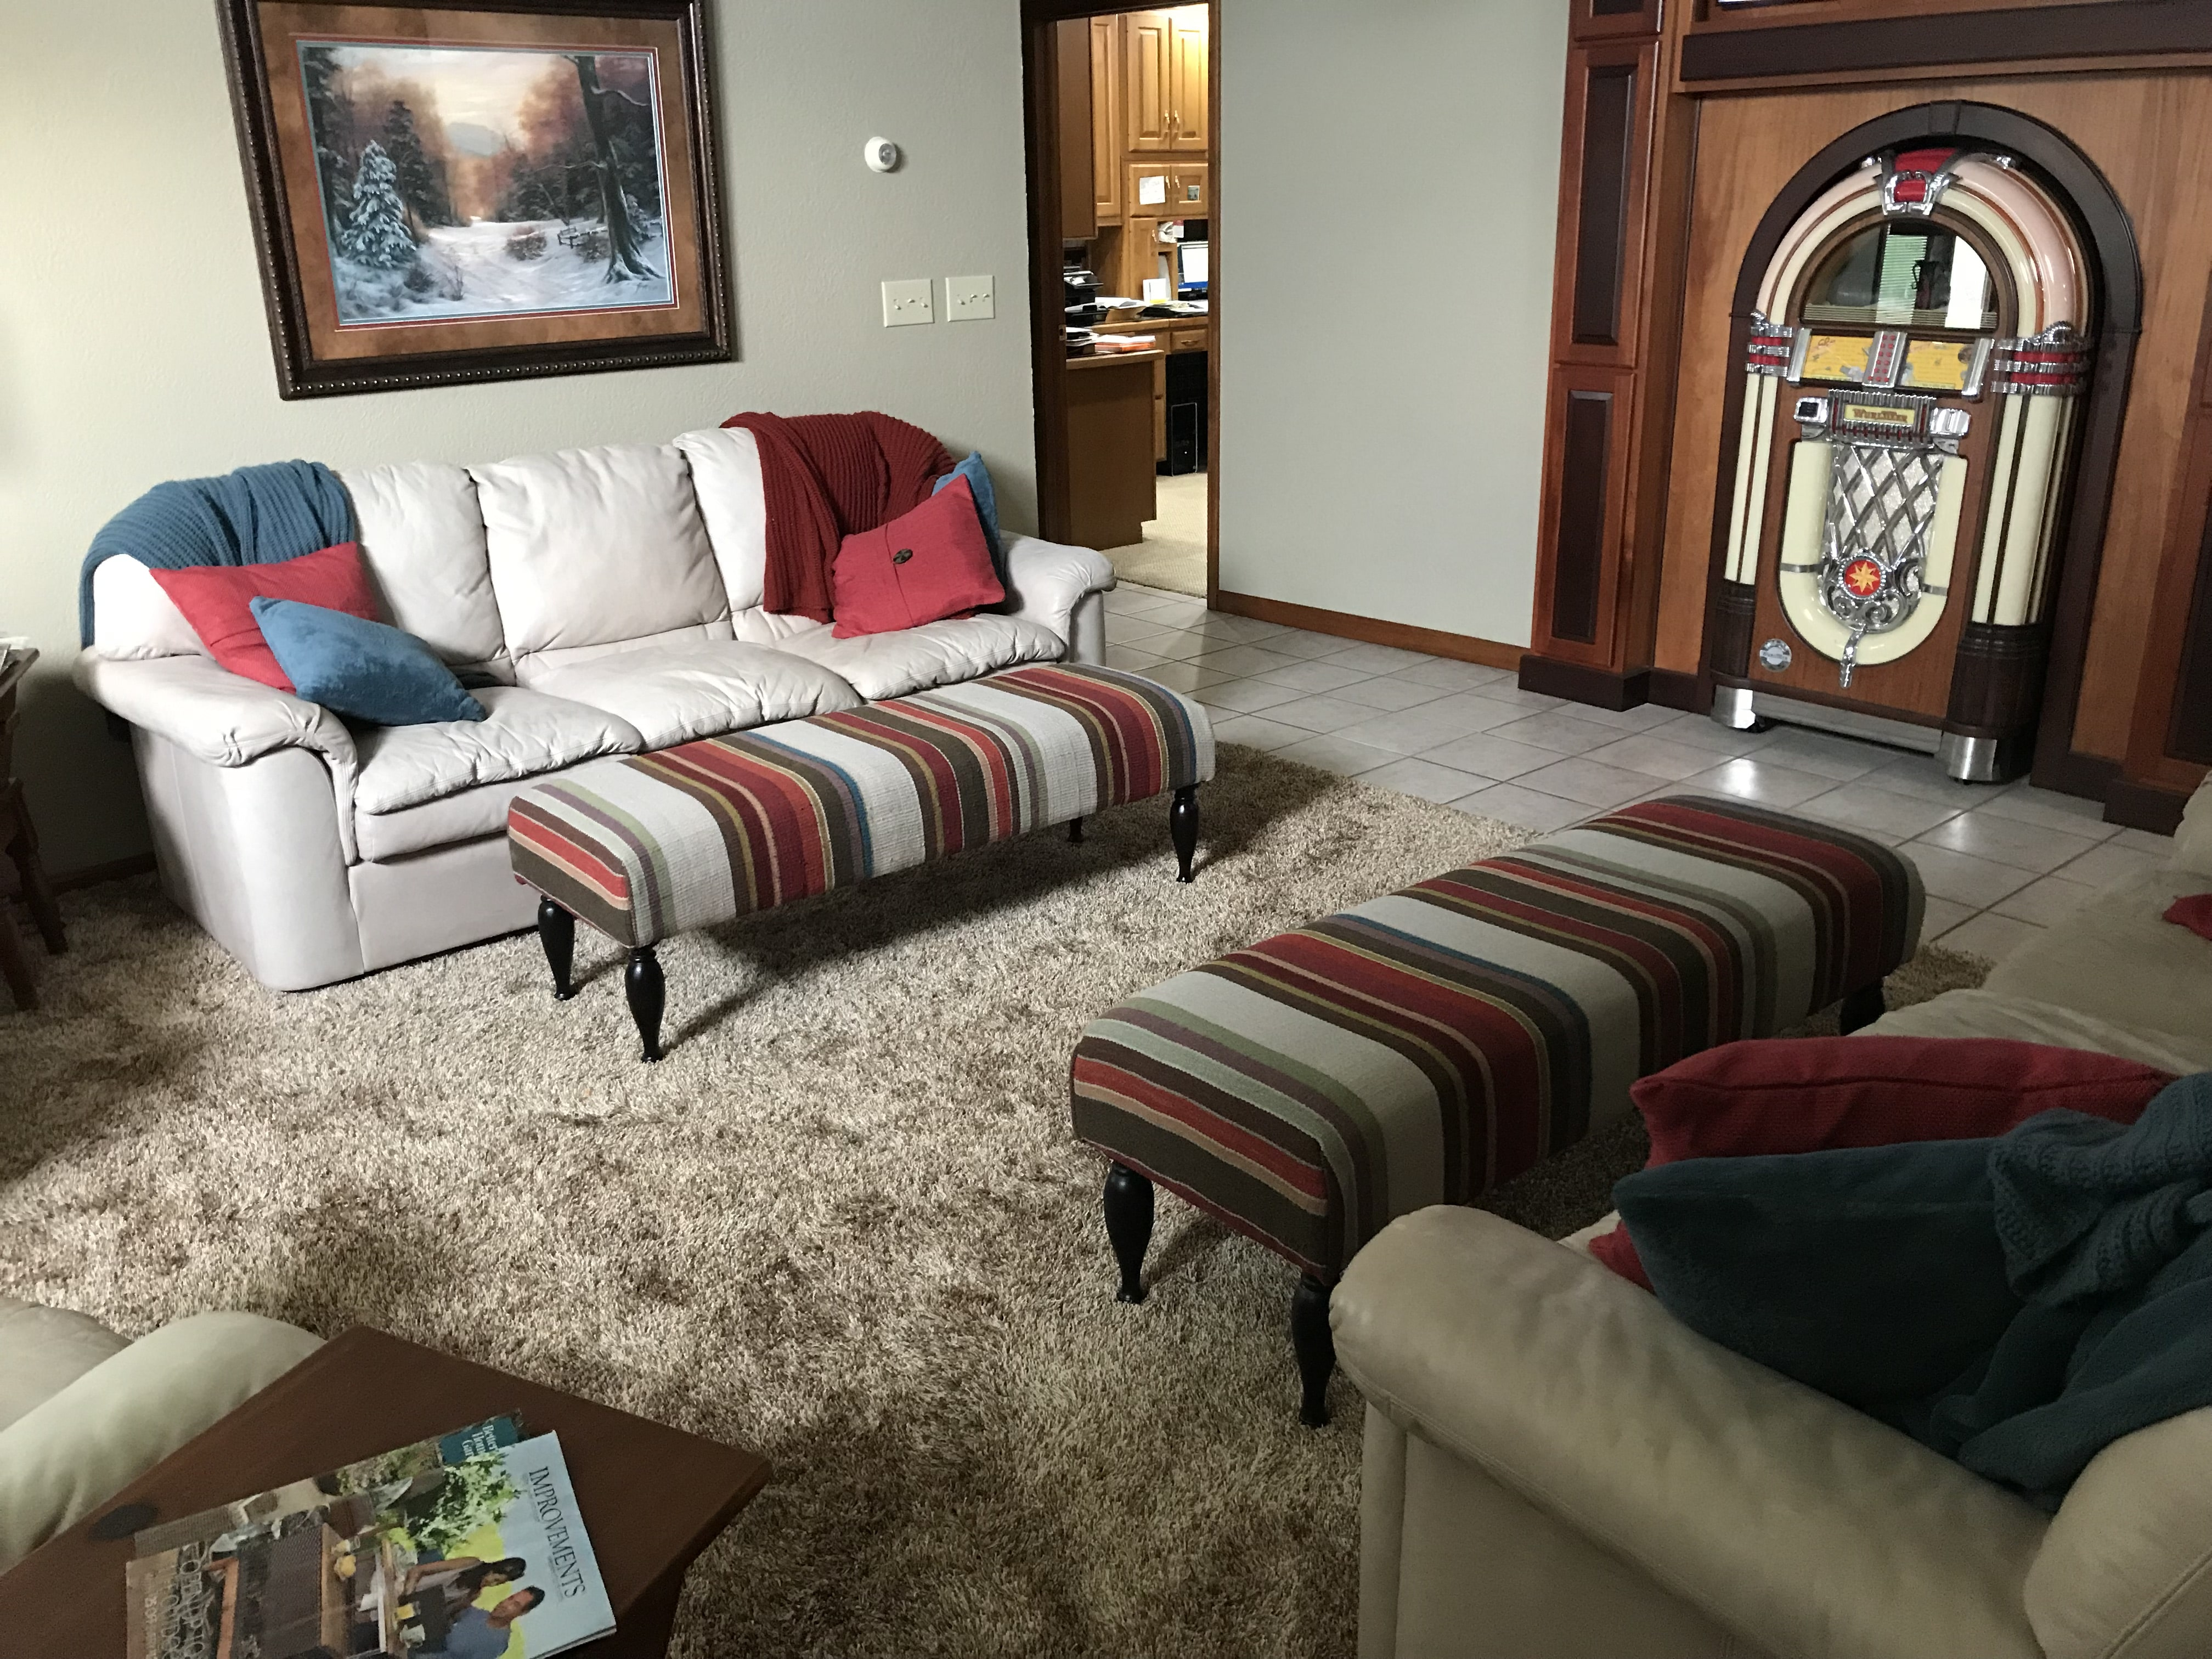 Shag carpet installation by Greentown Flooring